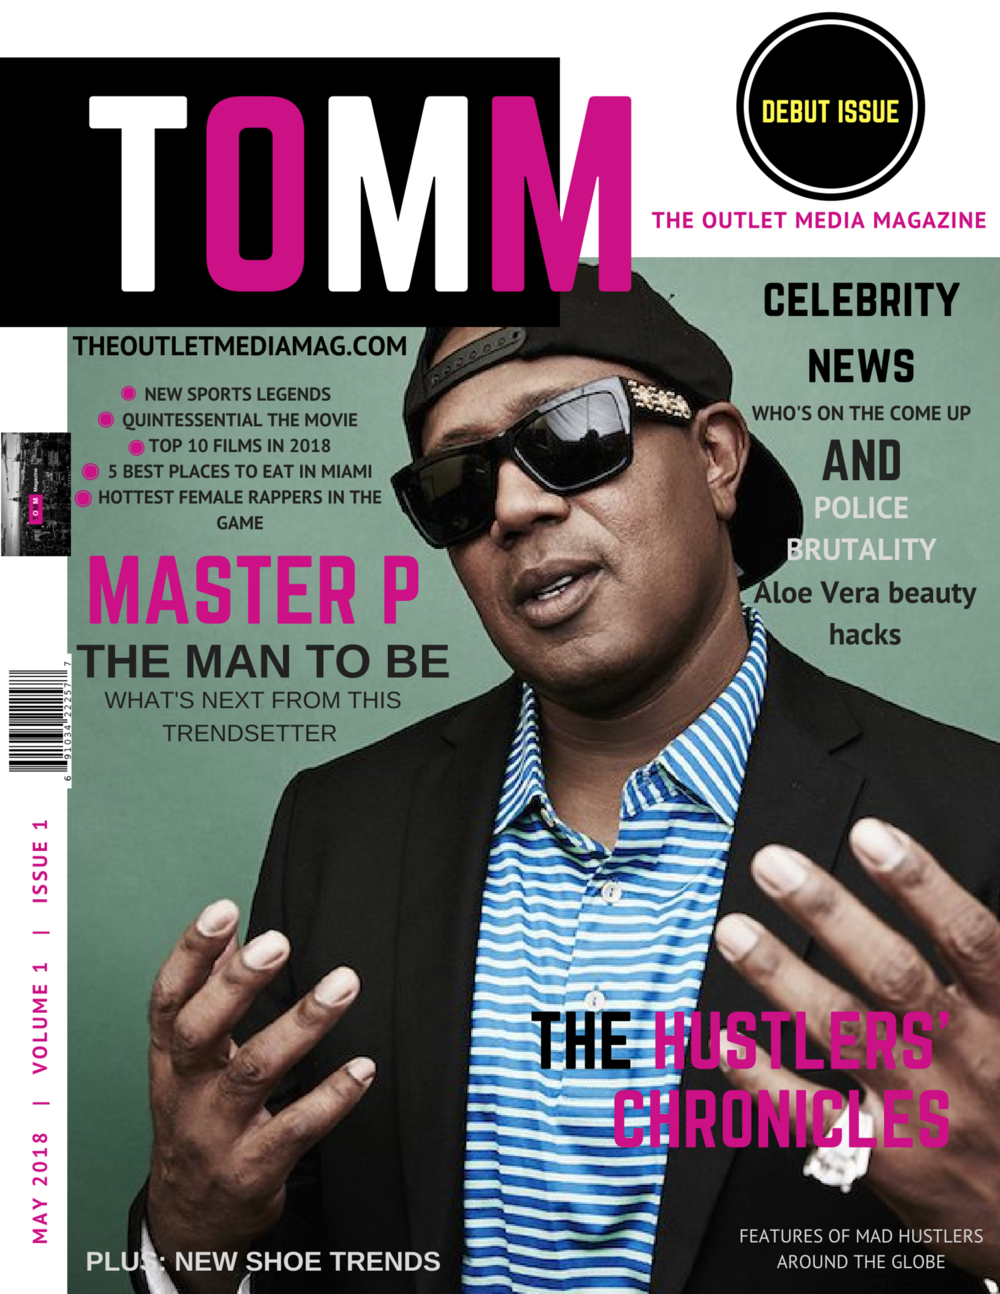 THE OUTLET MEDIA MAG OFFICIAL COVER (6).png